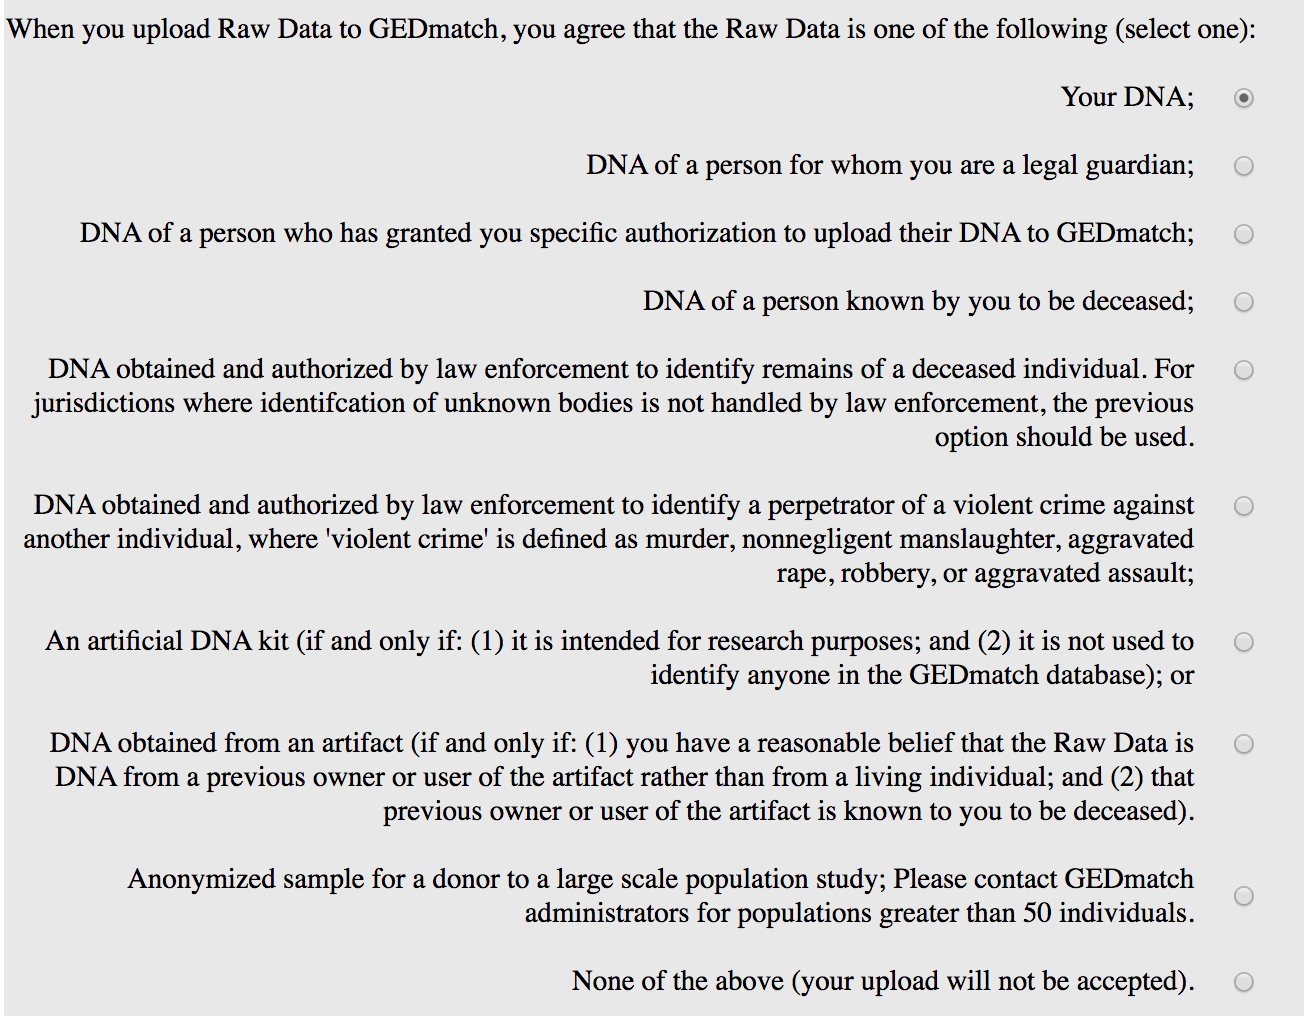 The GEDmatch user must have appropriate authorization to upload DNA data to GEDmatch.